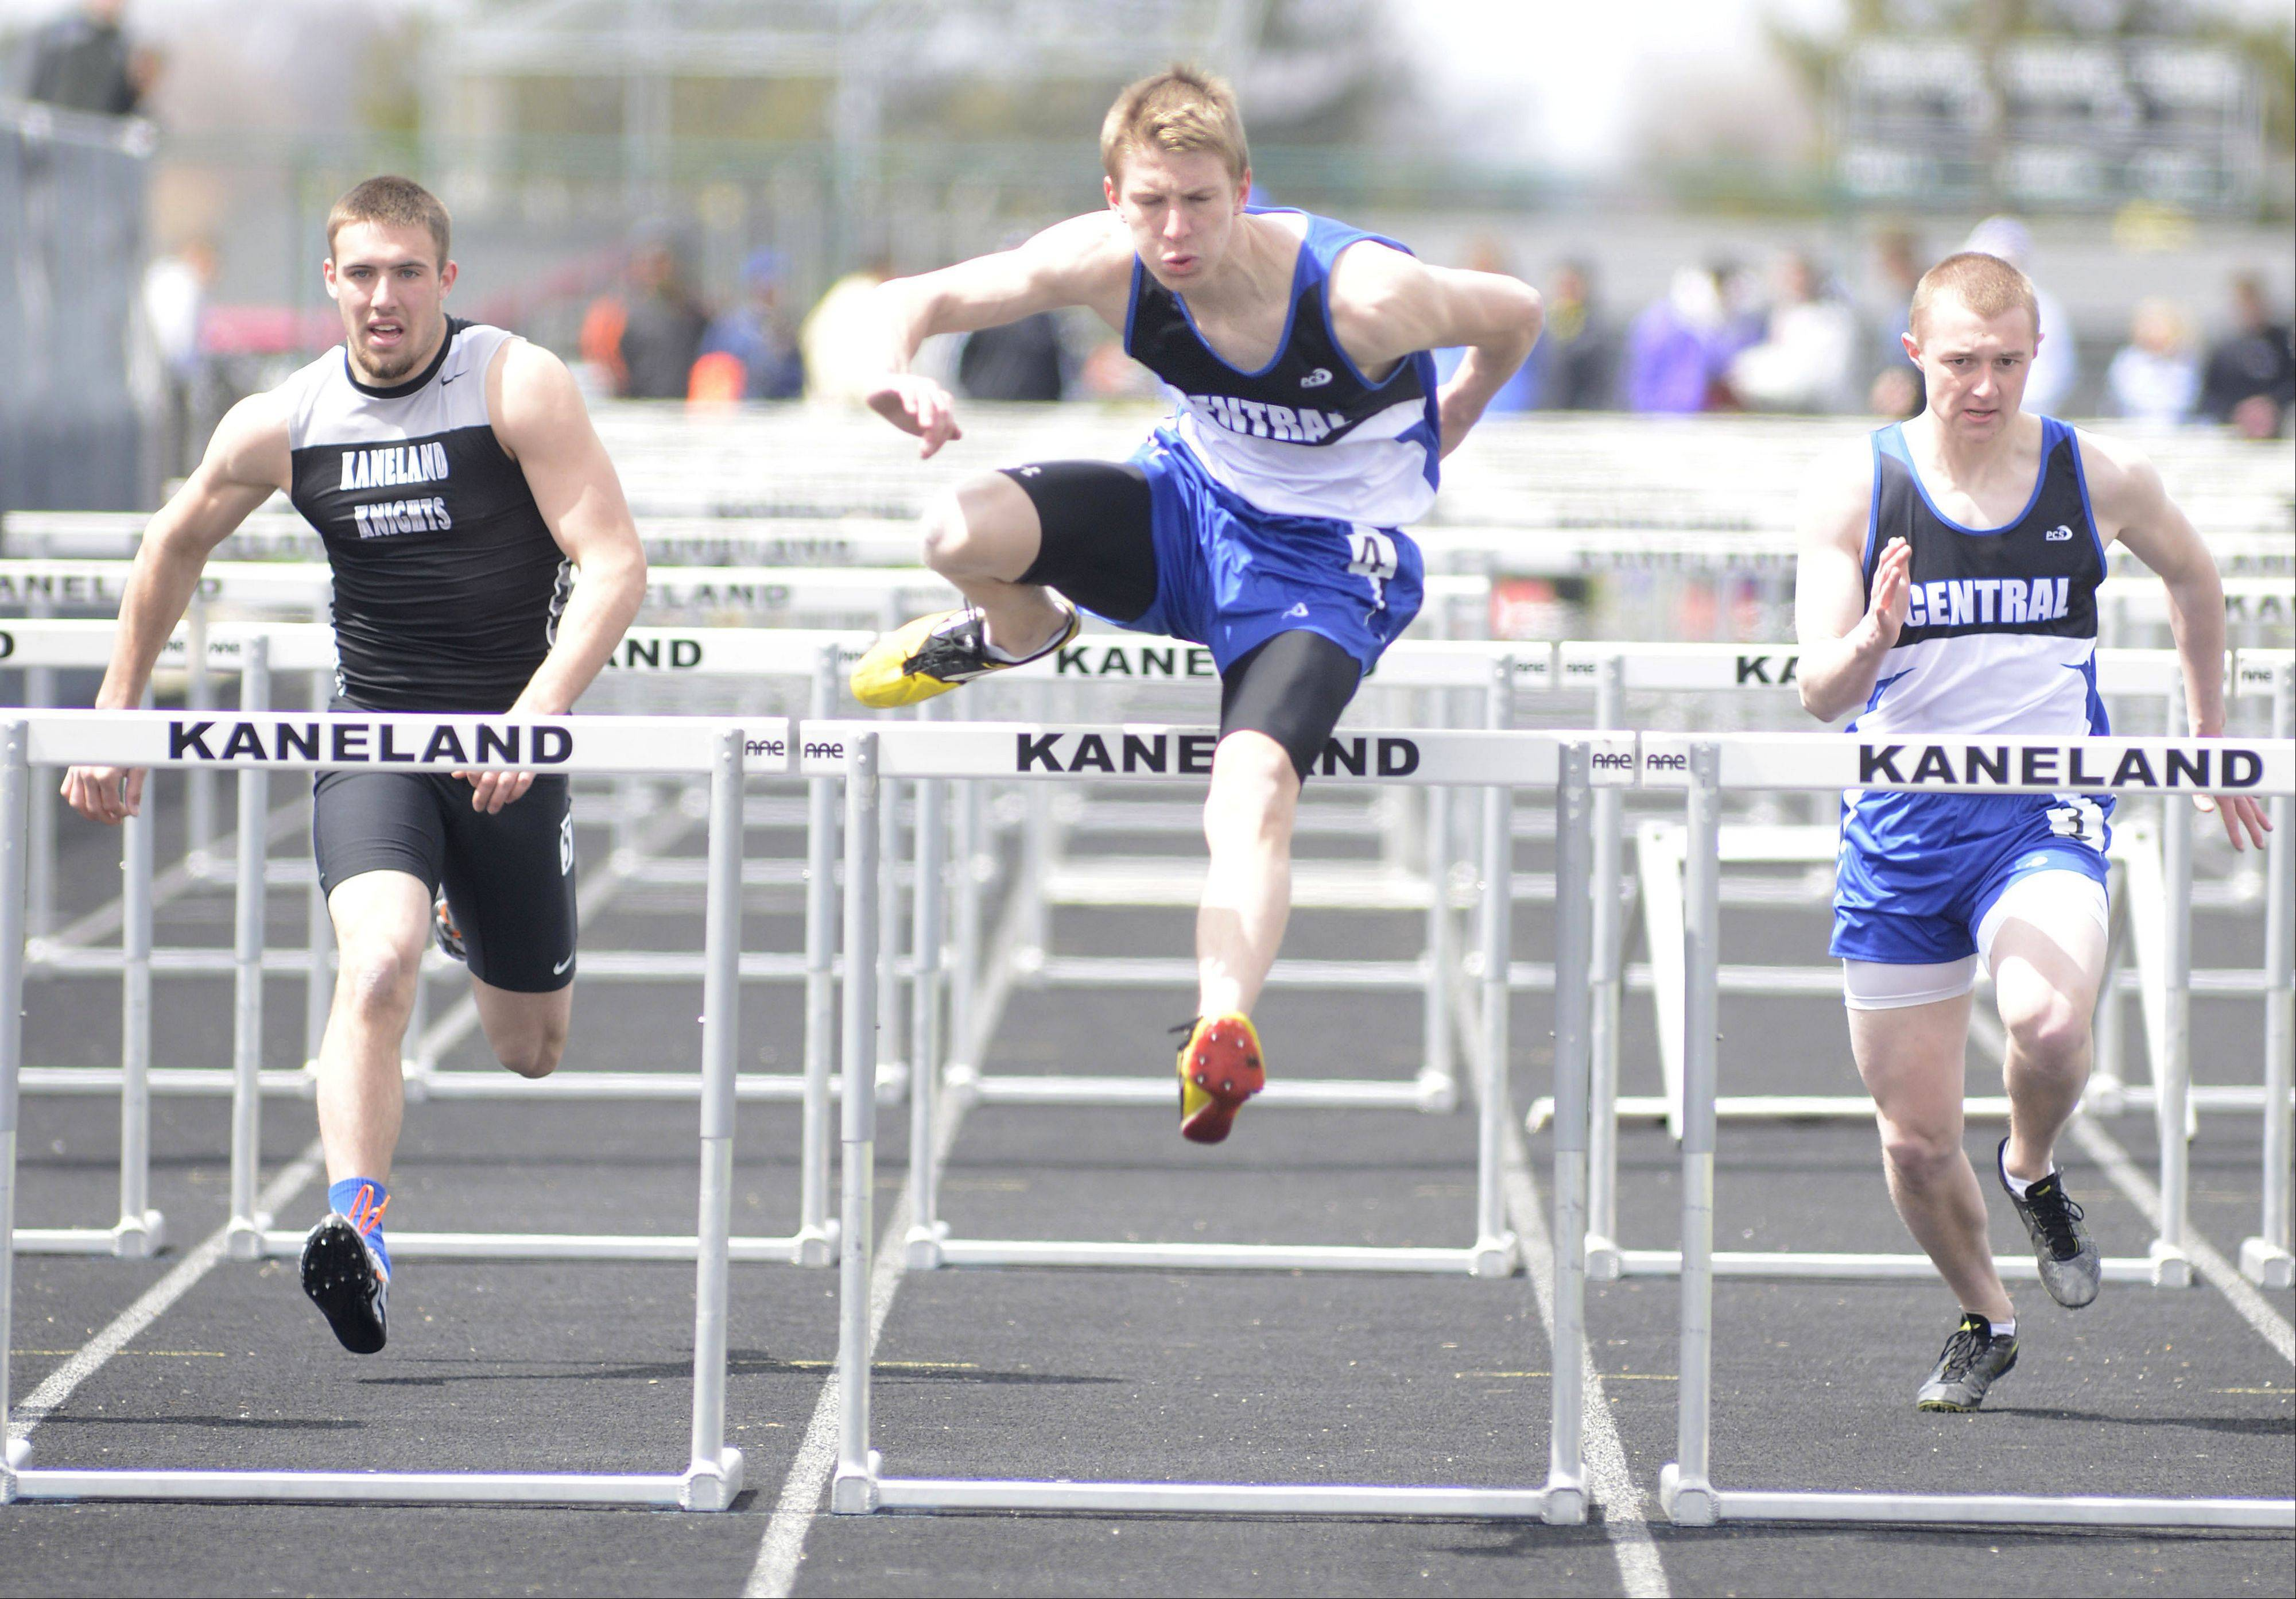 Burlington Central's Lucas Ege takes first in the 110-meter hurdles at Kaneland's Peterson Prep meet on Saturday.